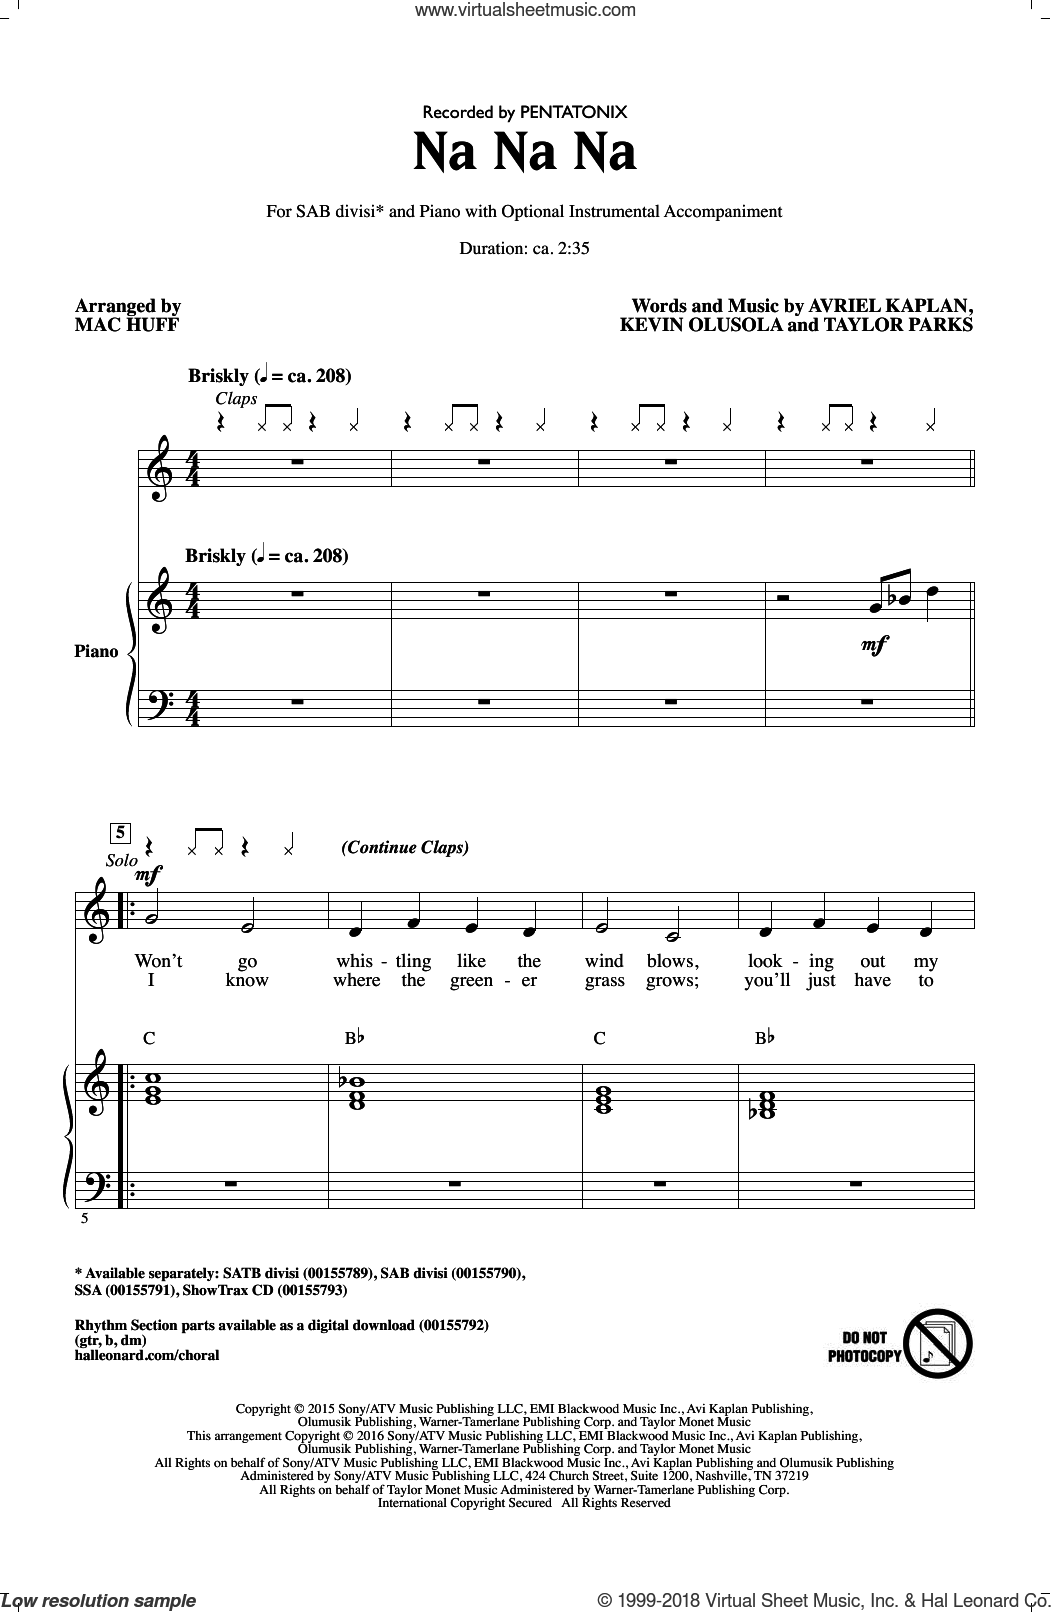 Na Na Na sheet music for choir by Mac Huff, Pentatonix, Kevin Olusola and Taylor Parks. Score Image Preview.